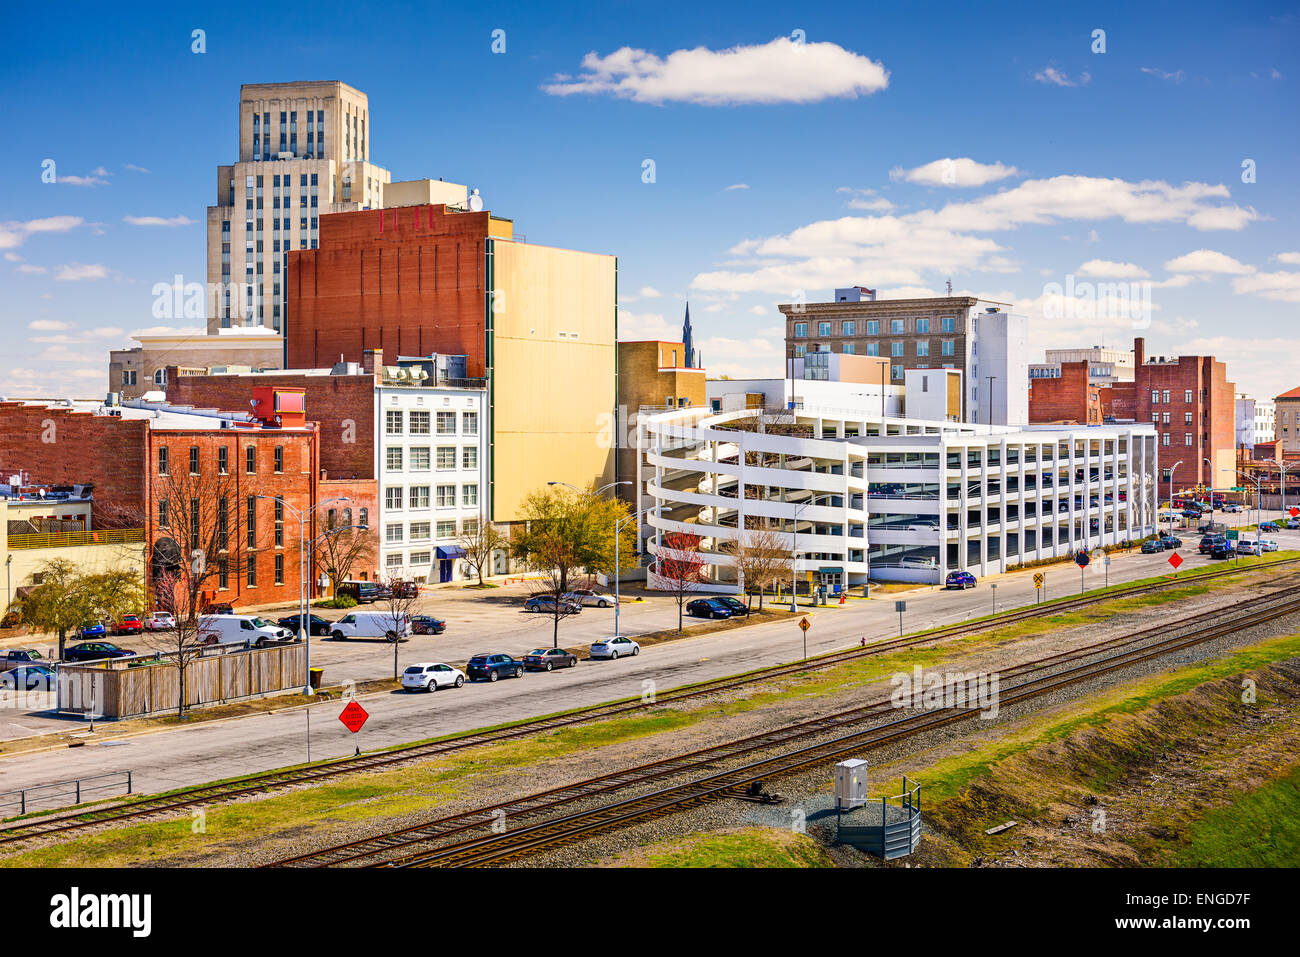 Durham, North Carolina, USA Innenstadt Stadtbild. Stockbild